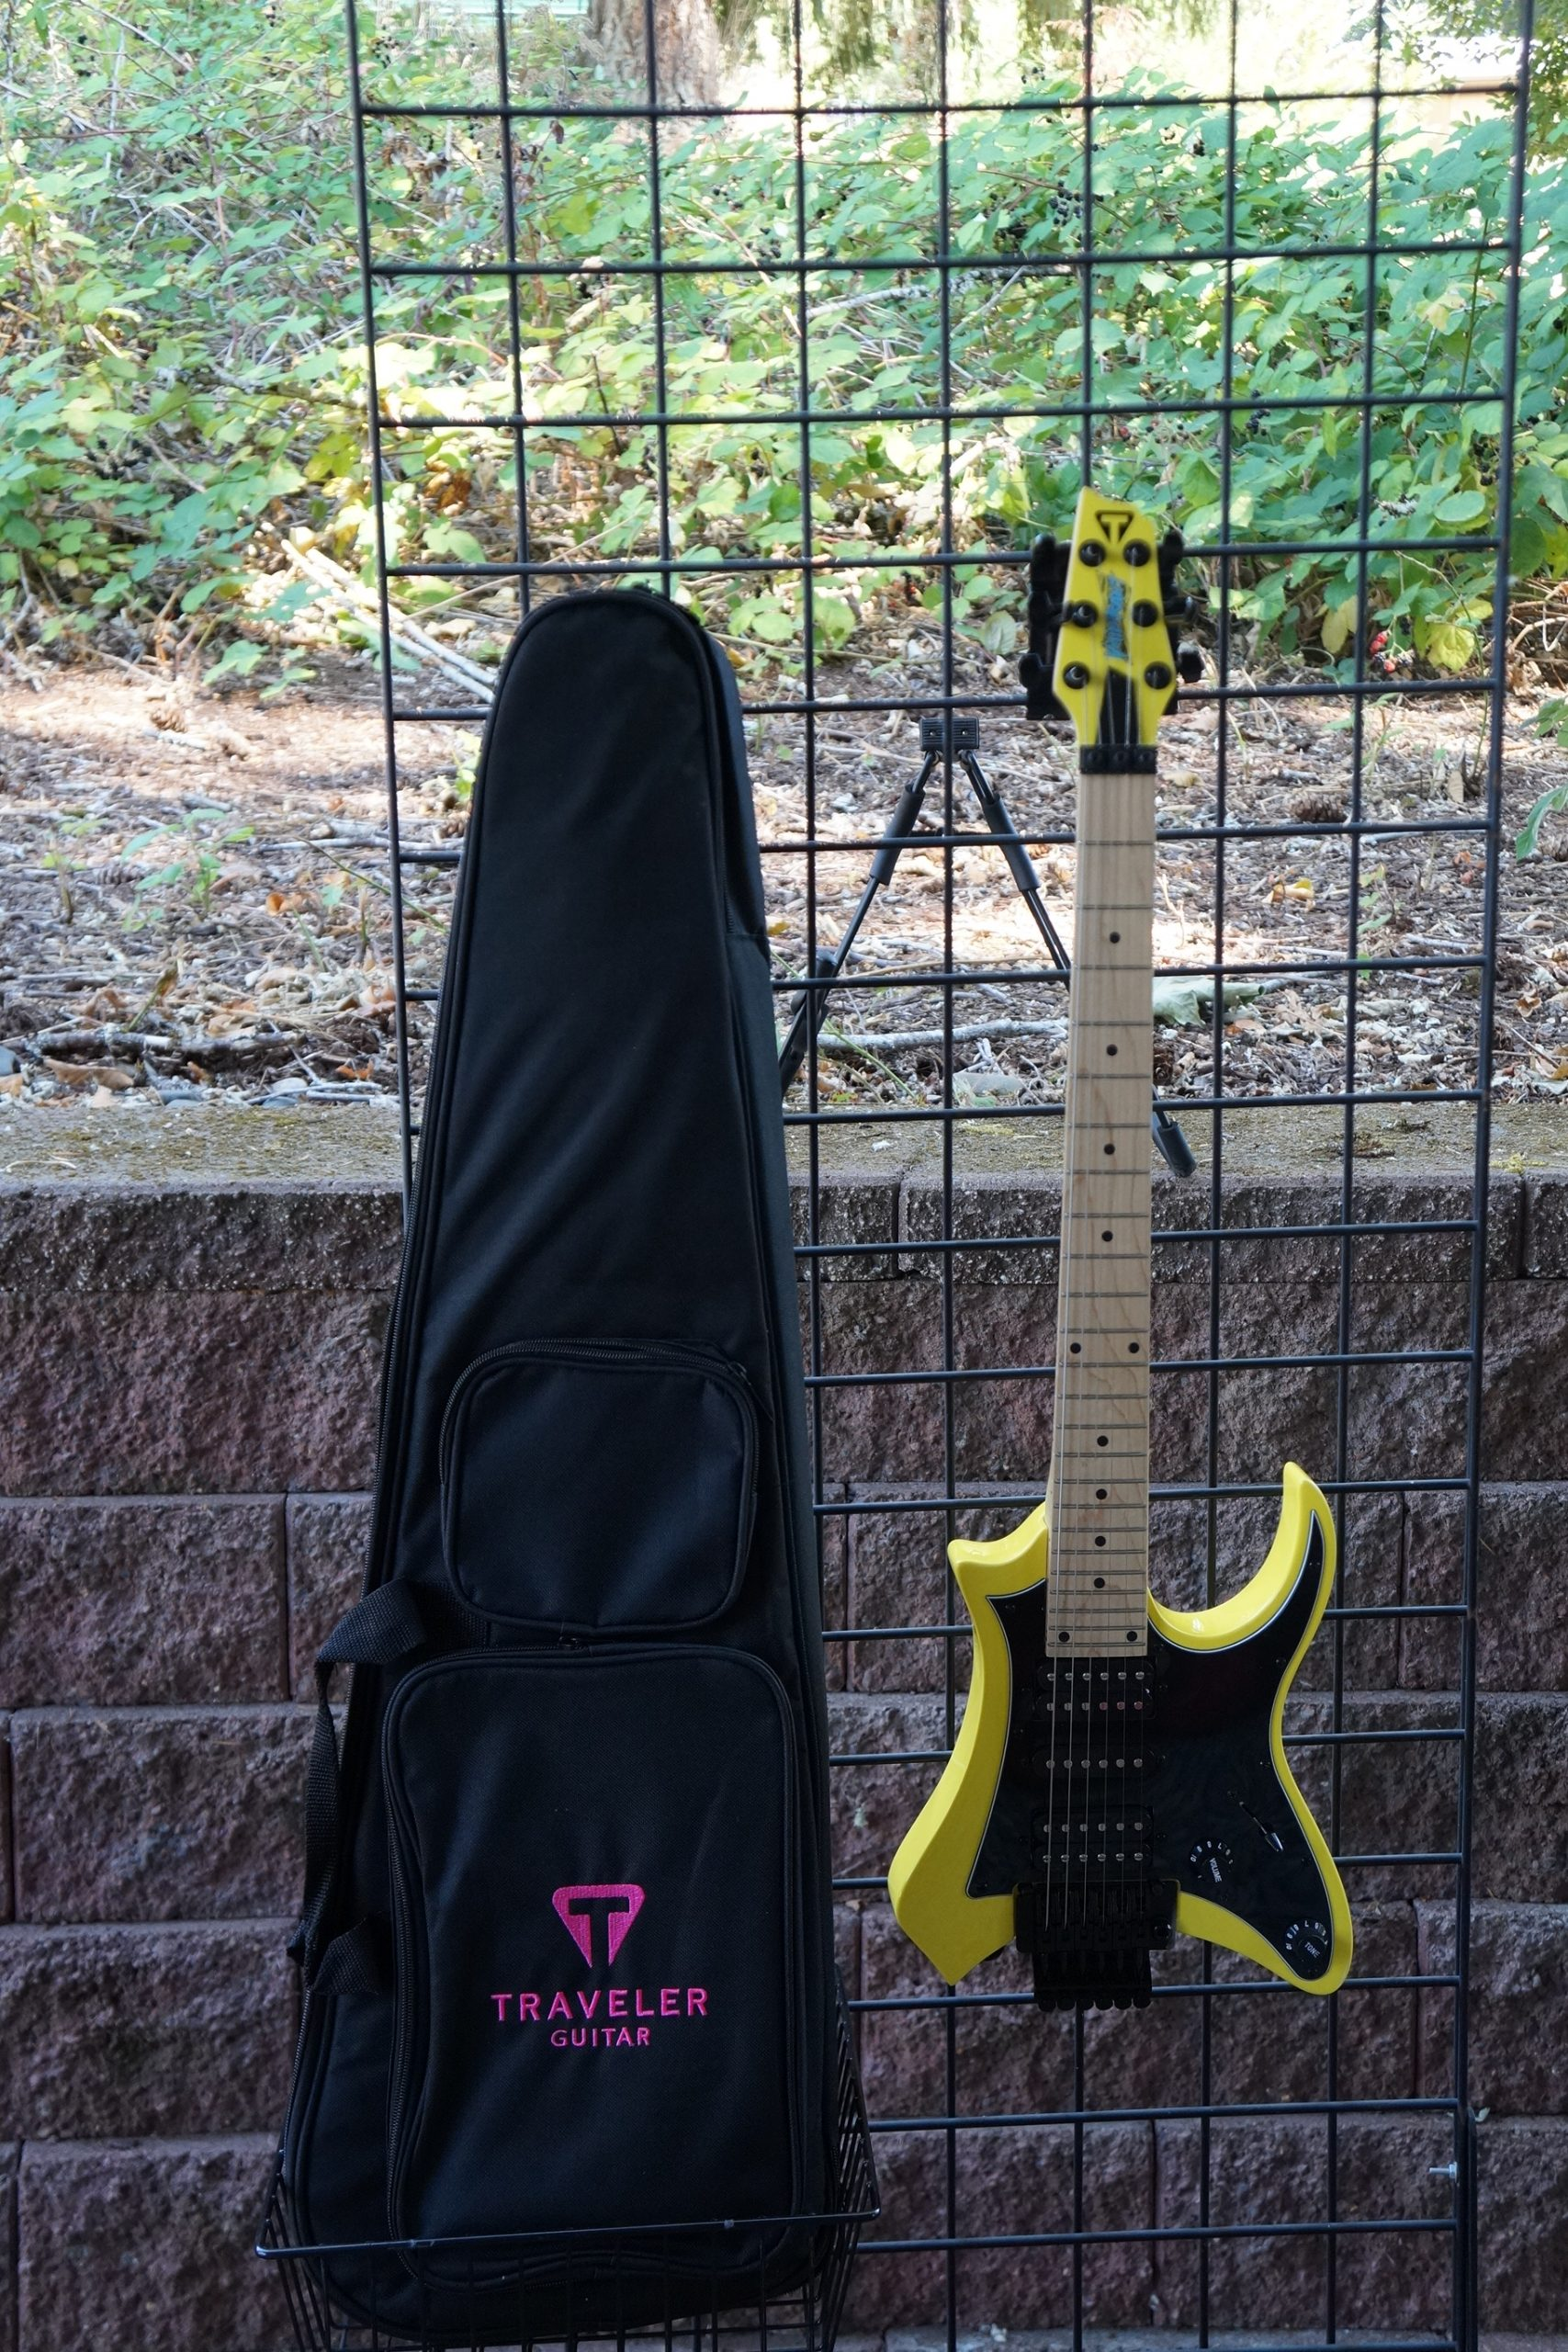 Traveler Vaibrant 88S HSH Electric Travel Guitar in Electric Yellow with Travel Bag